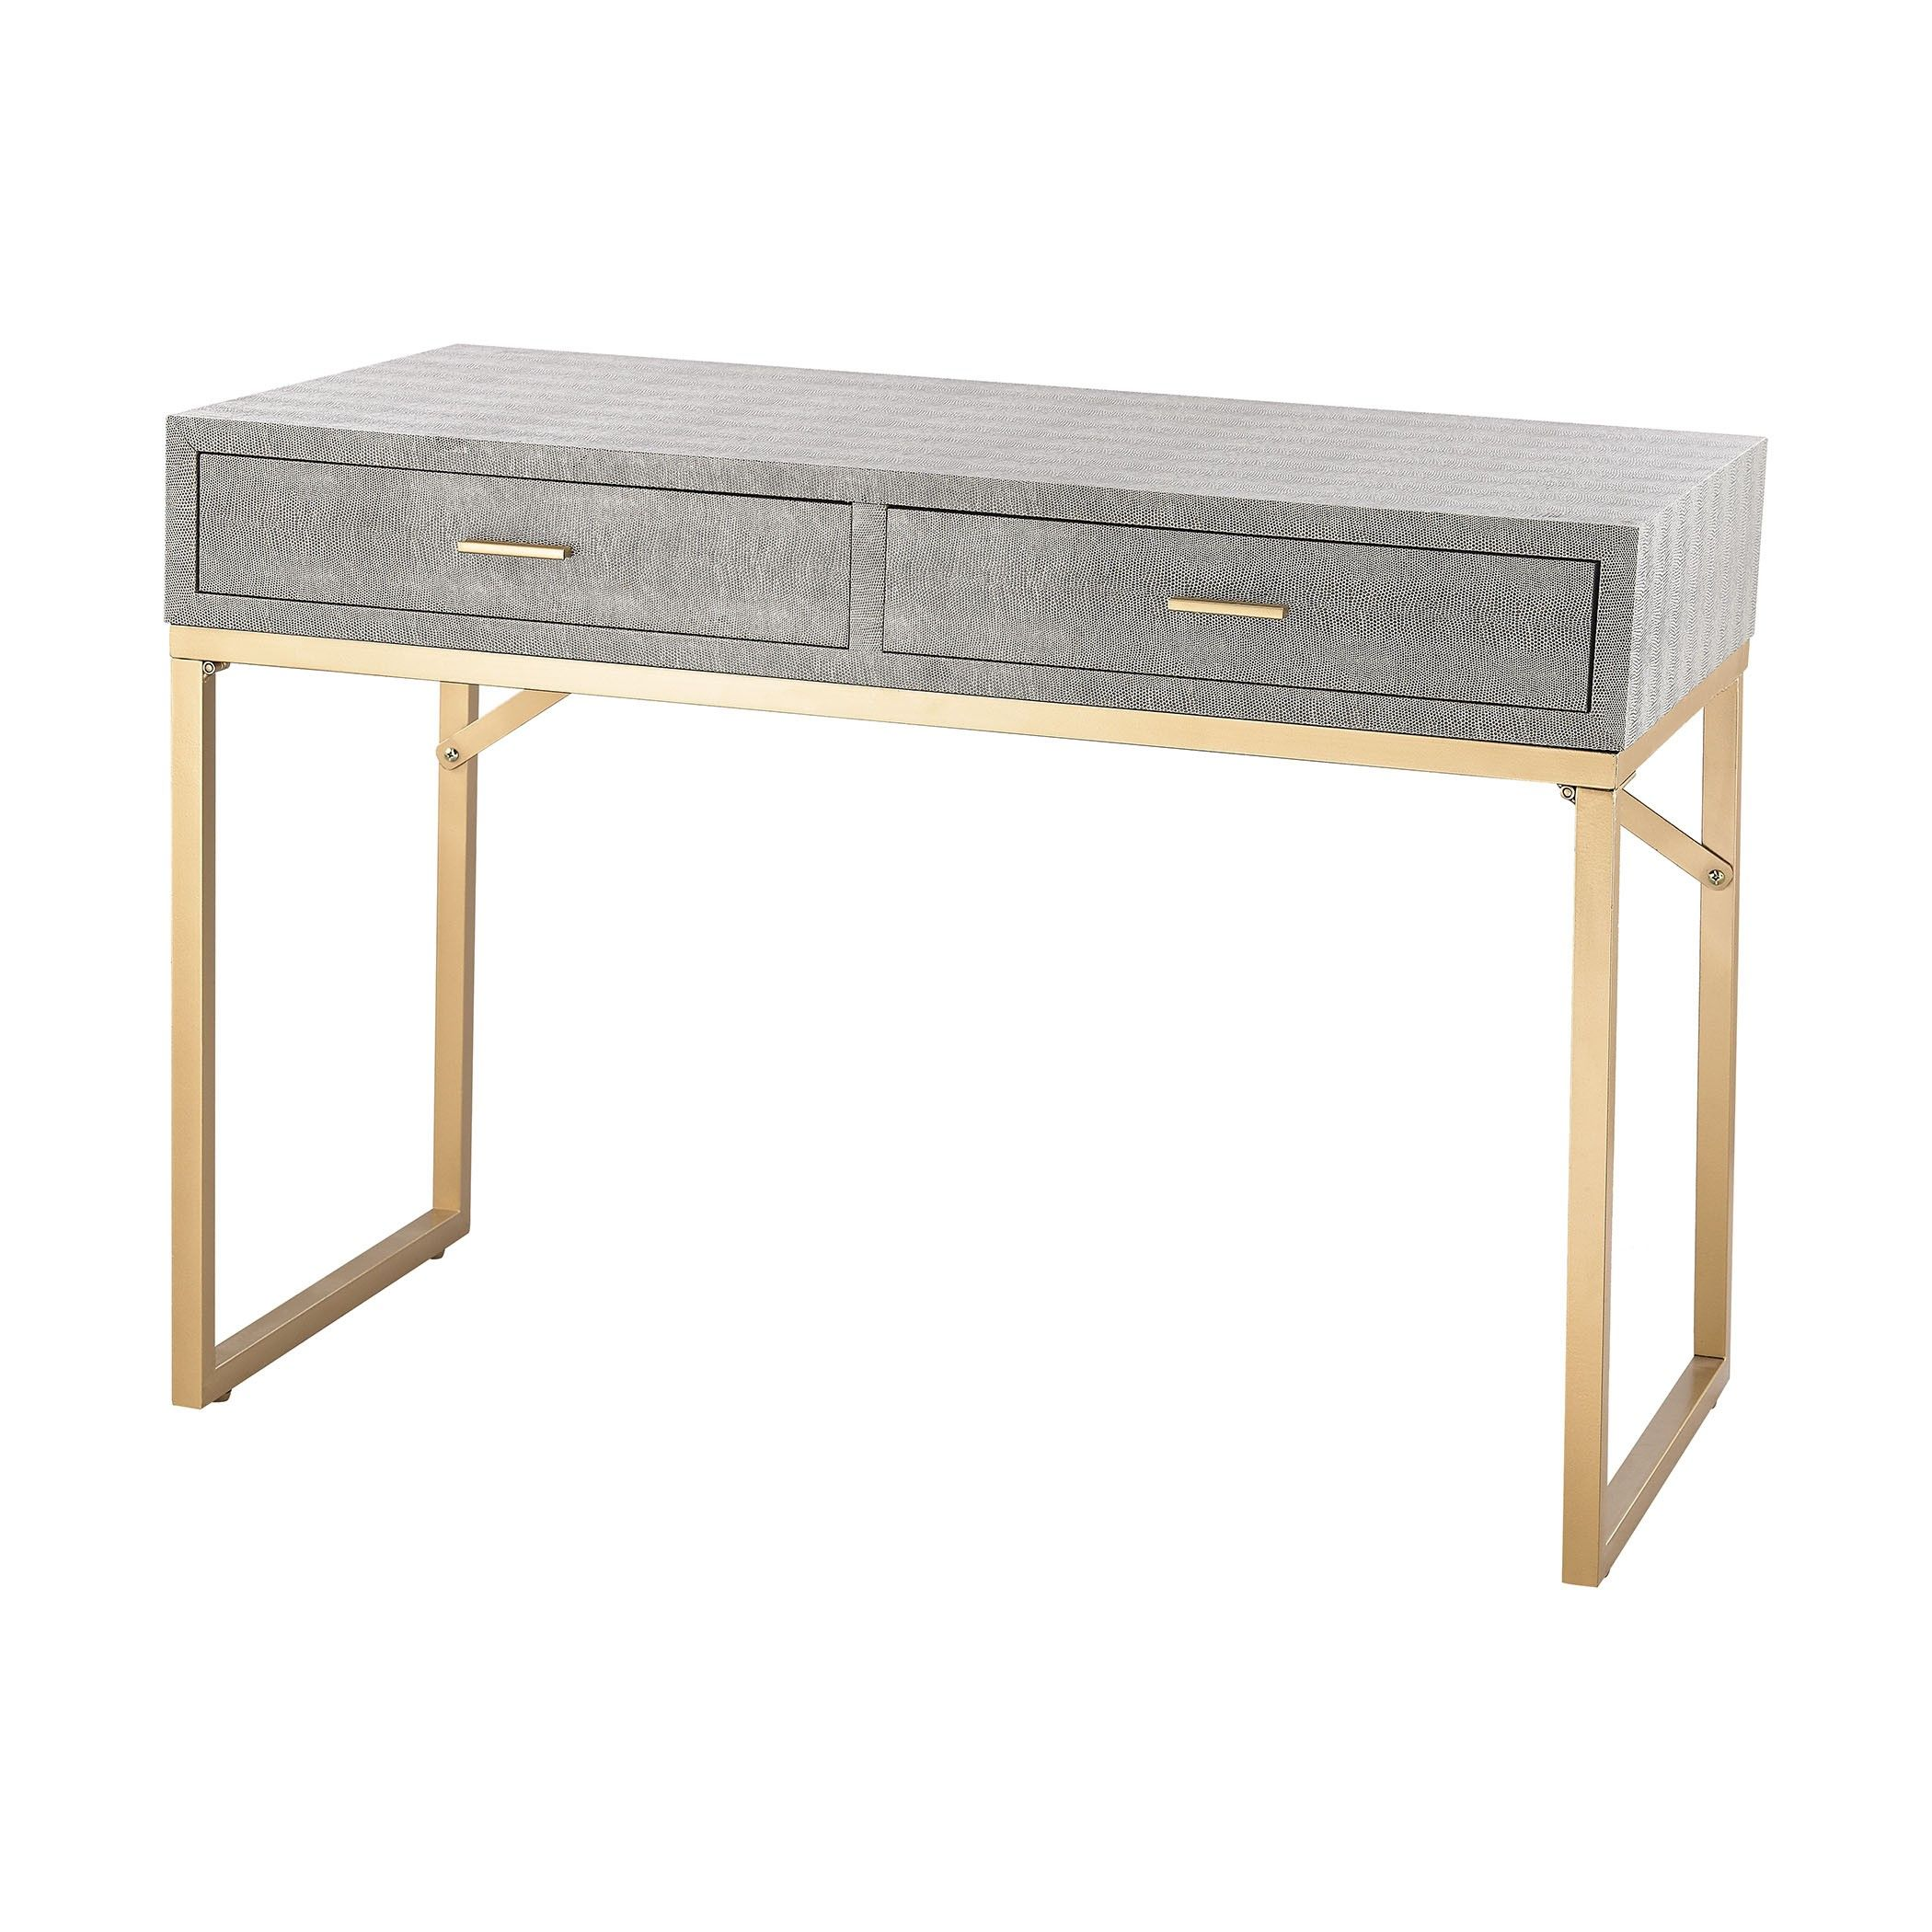 Sterling Beaufort Point Desk 3169-025T - Sterling Beaufort Point Desk 3169-025TSKU: 3169-025TManufacturer: SterlingCategory: FurnitureCollection: BeaufortType: DeskFinish: Gold,GreyMaterial: Wood,MetalUPC: 843558149704Country Of Manufacturer: ChinaDimensions 1: 39 W x 16 L x 31 H Inches, Weight: 28.2 LbsCarton Dimension: 18 W x 33 L x 42 H Inches, Weight: 30 Lbs